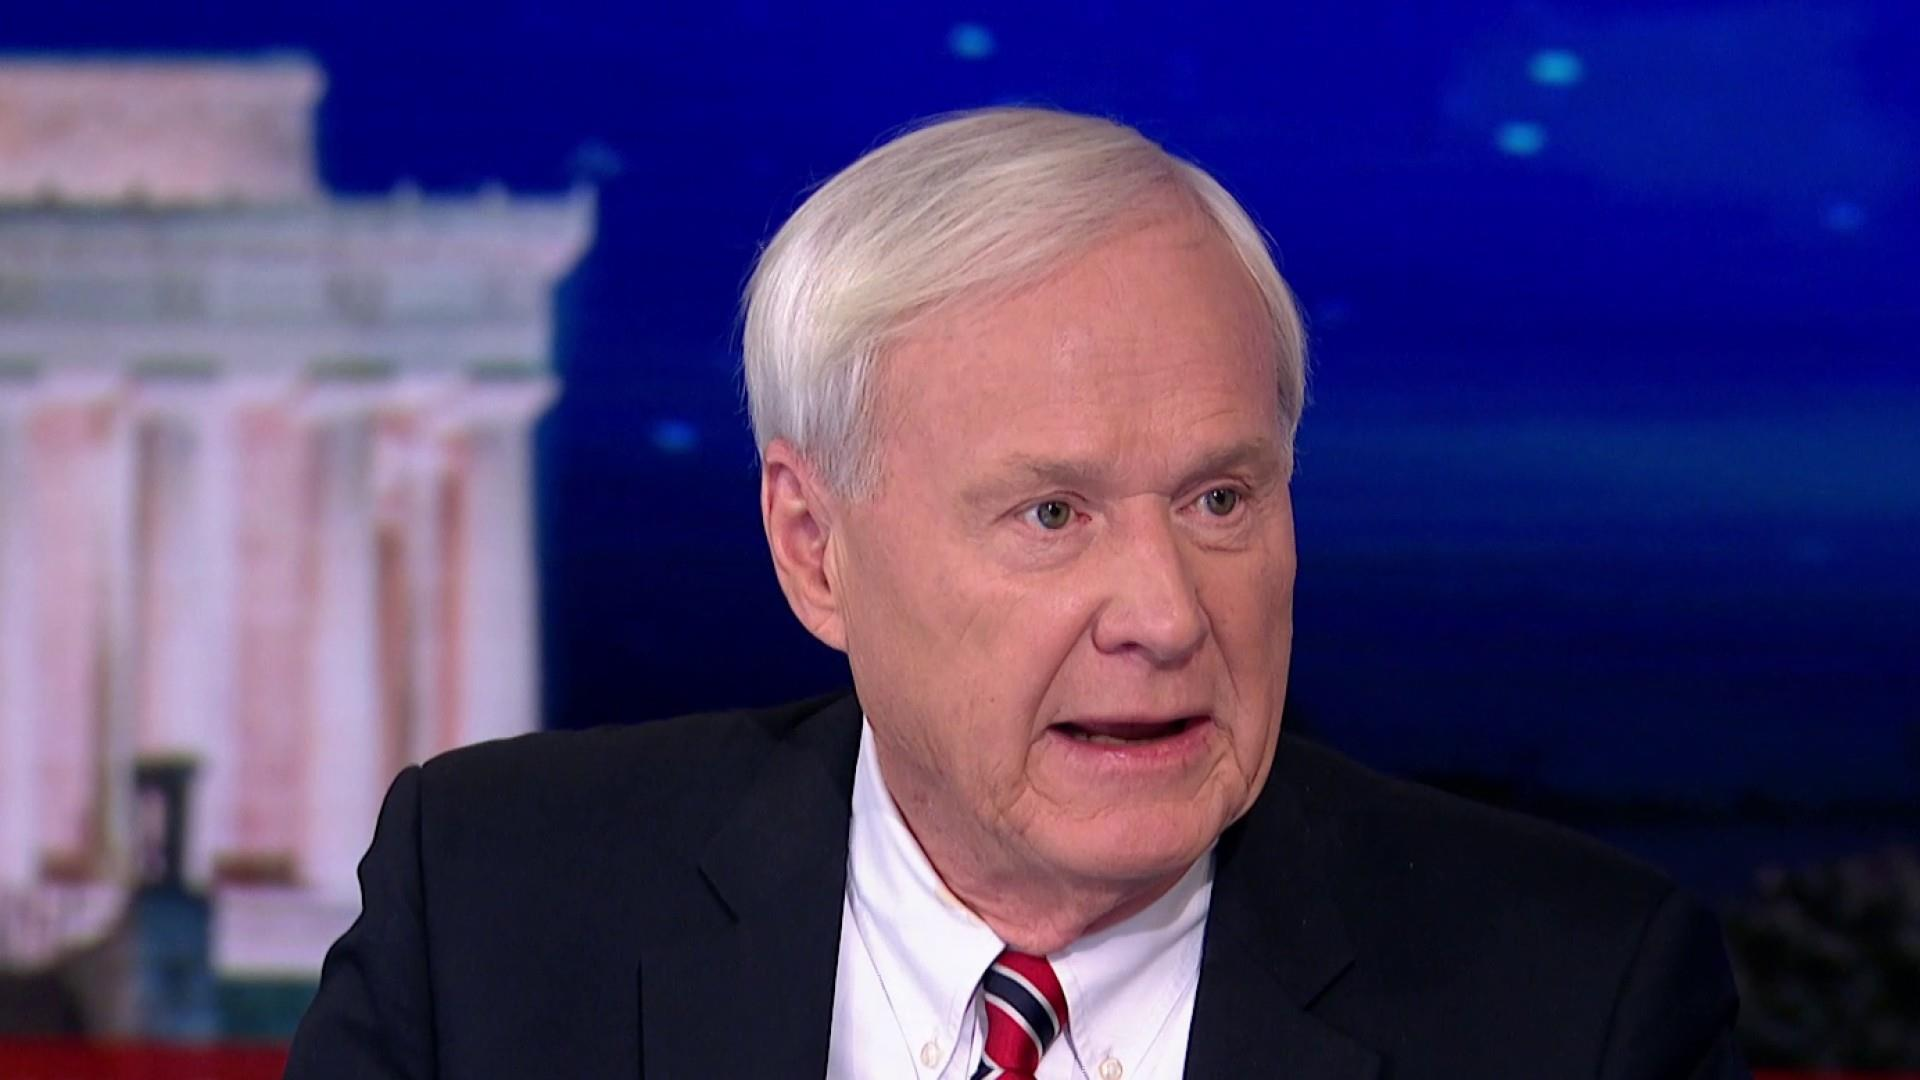 Chris Matthews on message to GOP senators: 'Not only did [Trump] do this... he will keep doing it'